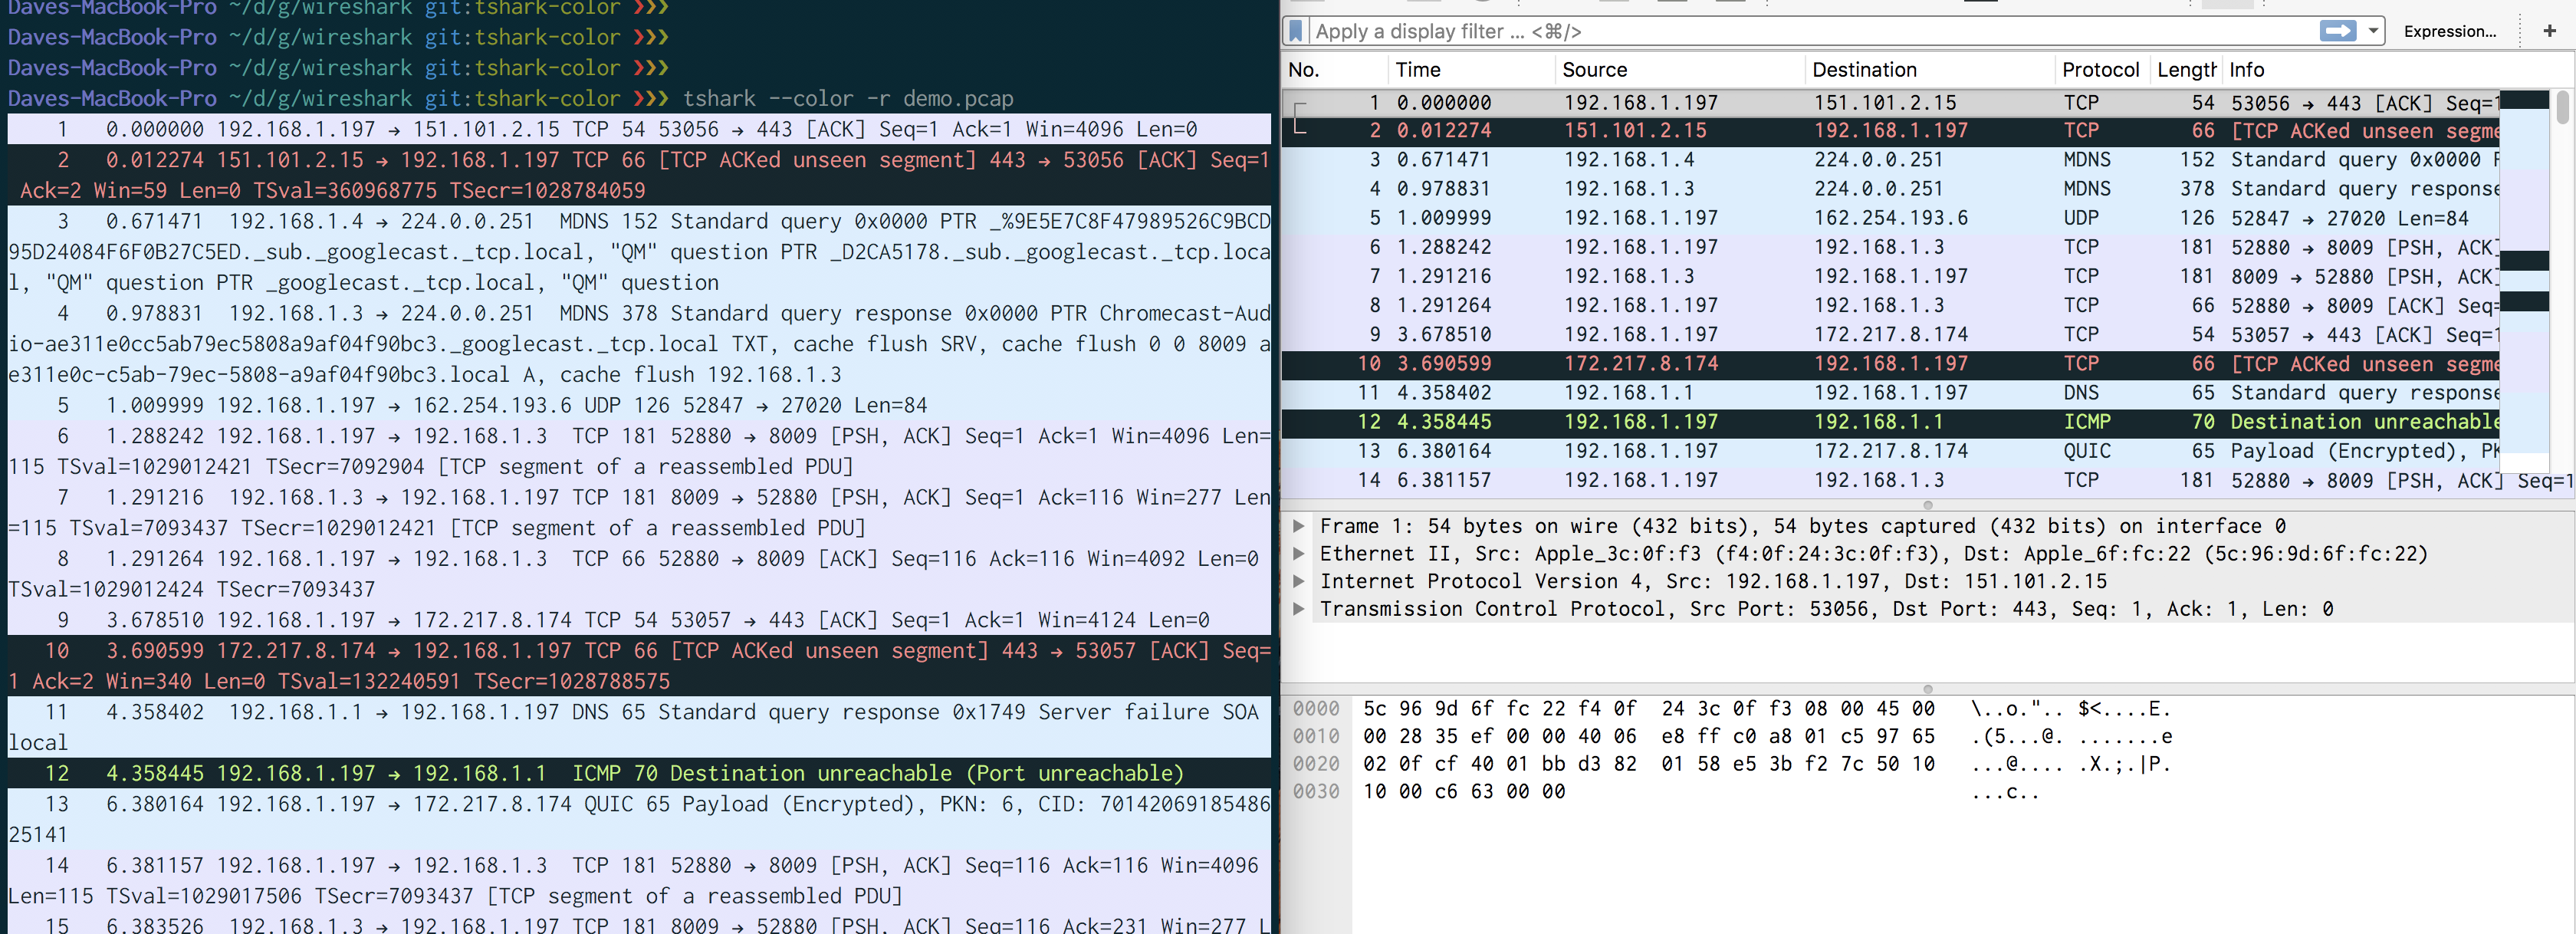 tshark/wireshark comparison screen shot